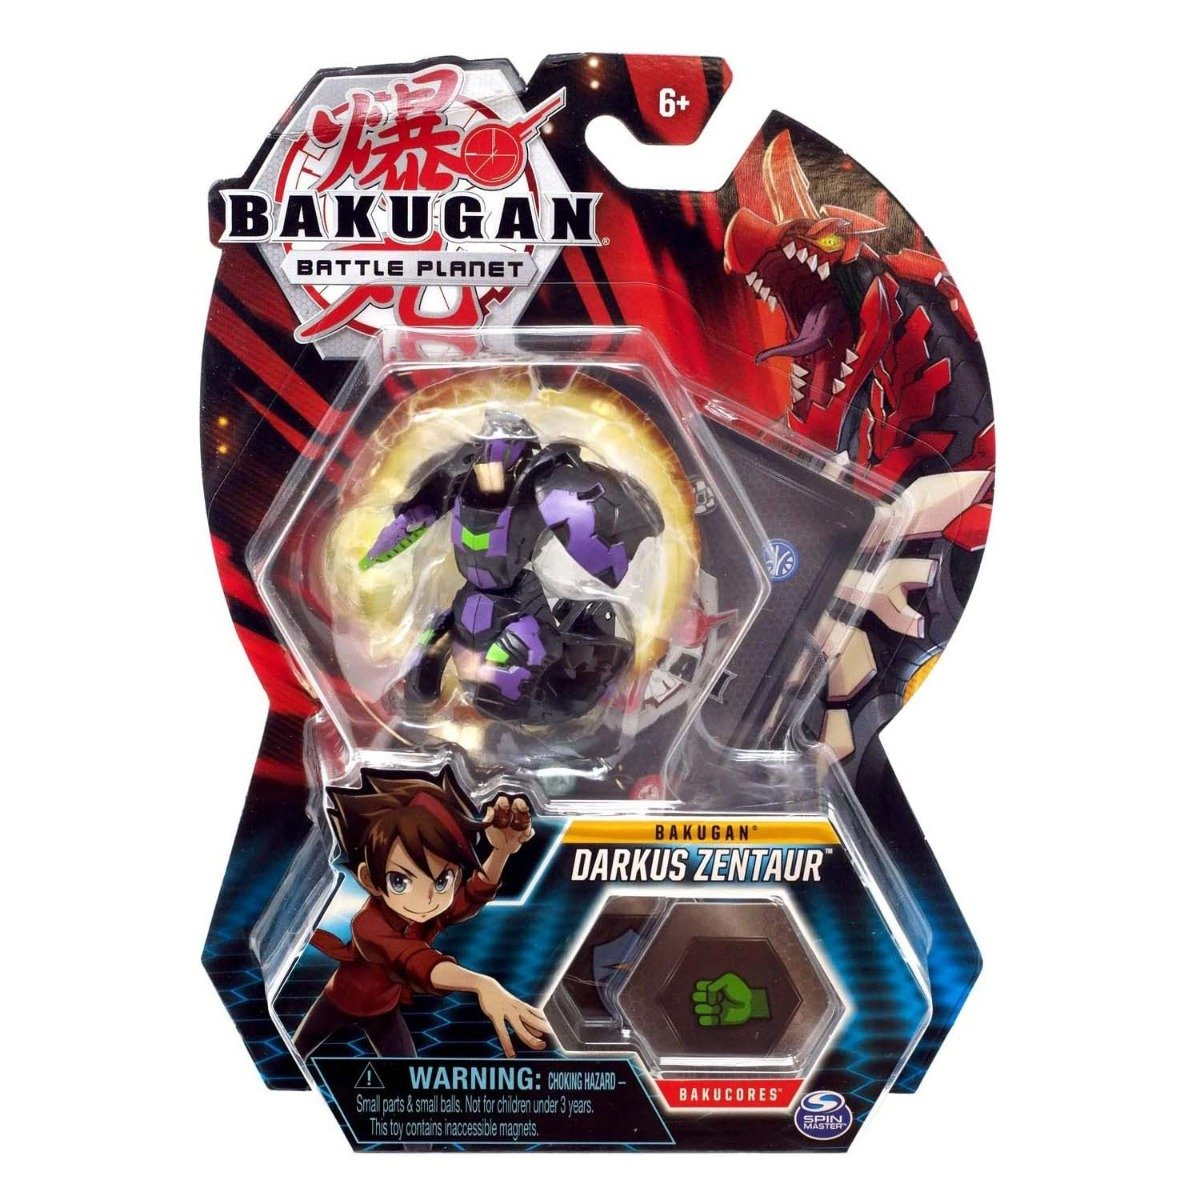 Figurina Bakugan Battle Planet, Darkus Zentaur, 20118444